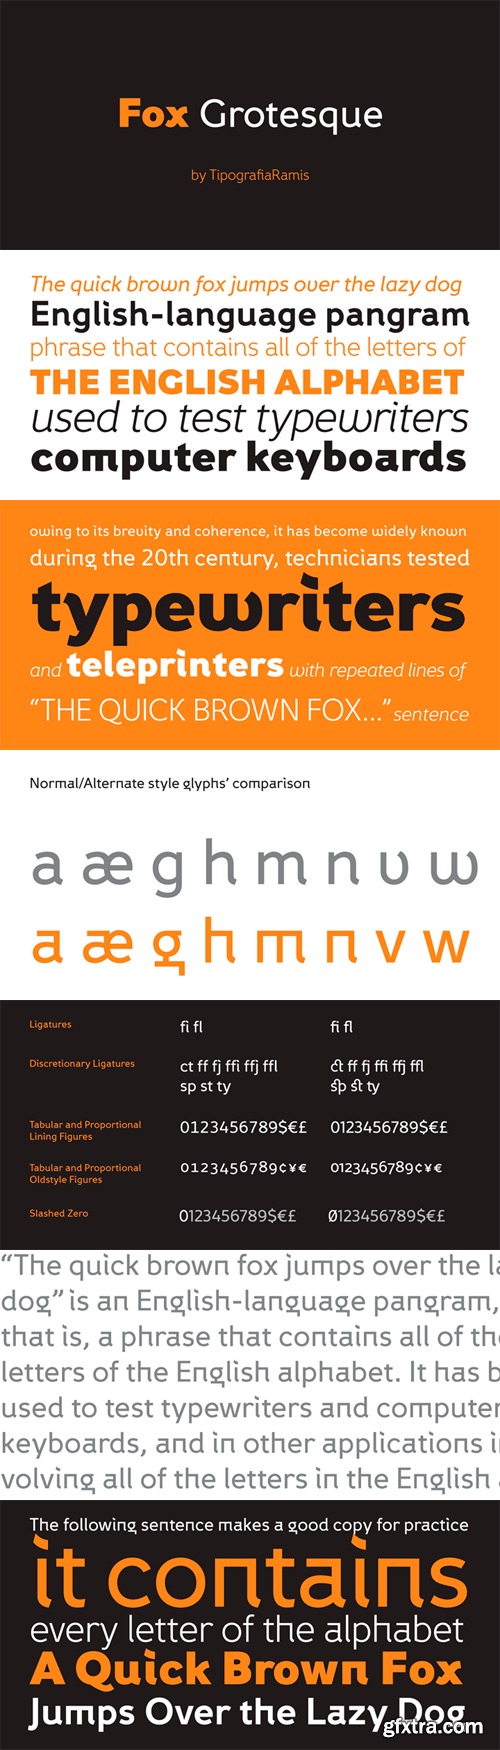 Fox Grotesque Font Family - 12 Fonts for $200